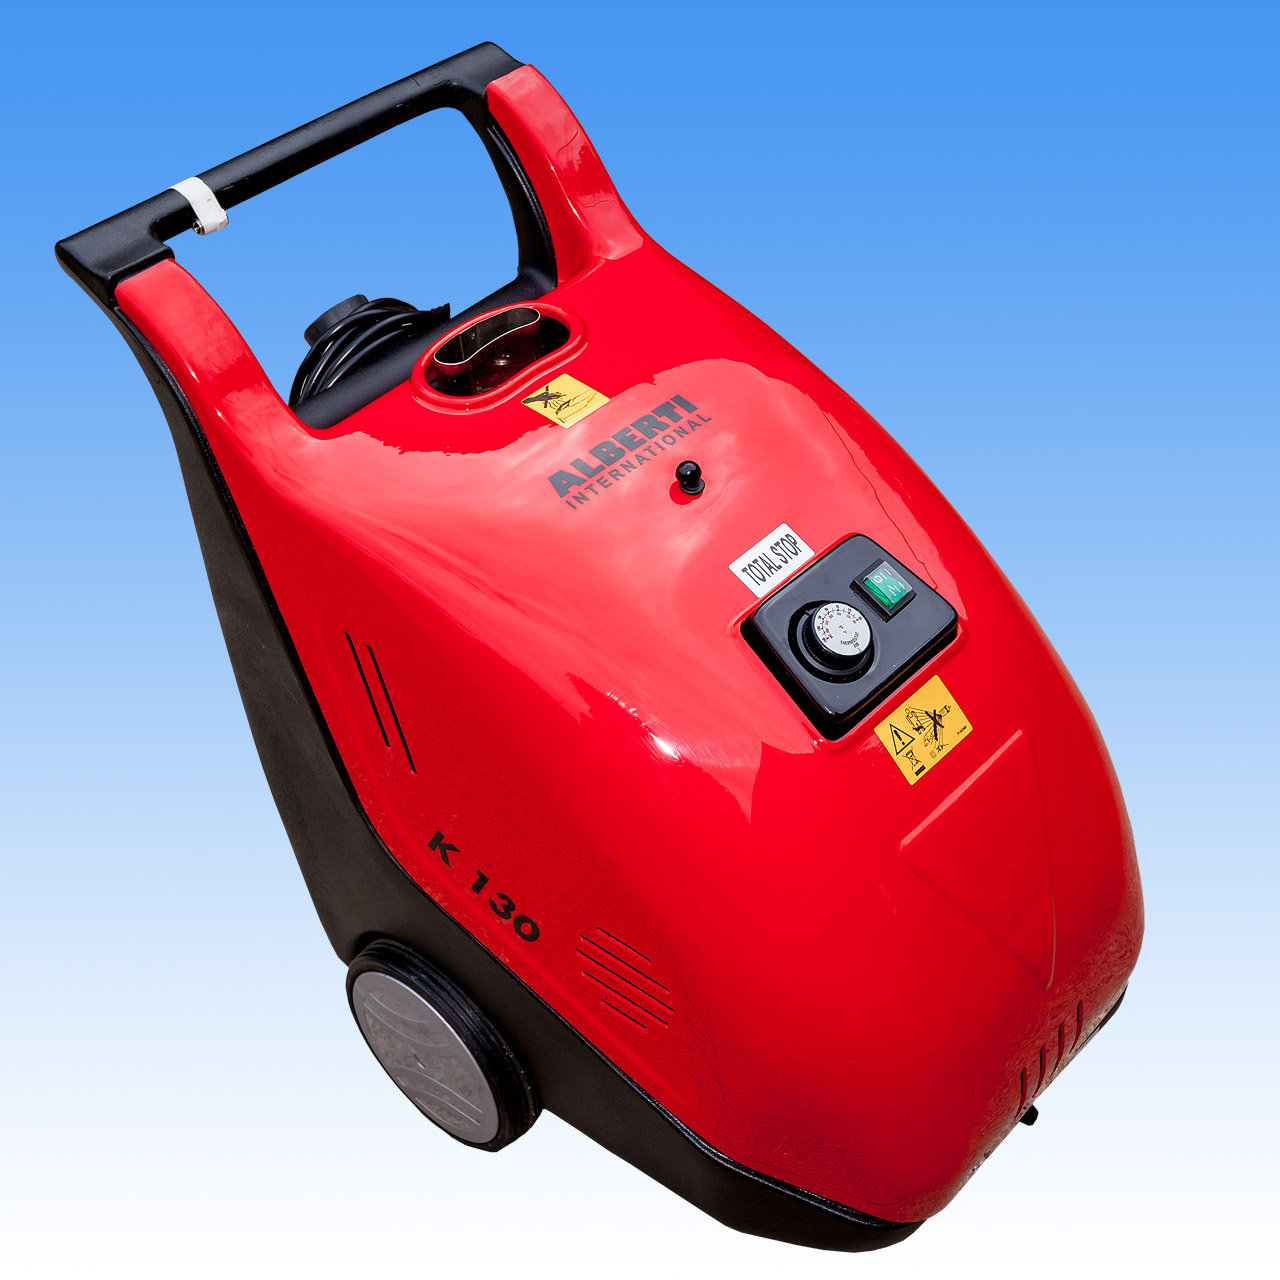 Alberti K130|8  1900psi   Electric | Diesel | HOT and COLD WATER High Pressure Washer Cleaner   **SPECIAL PRICE - LIMITED STOCK**